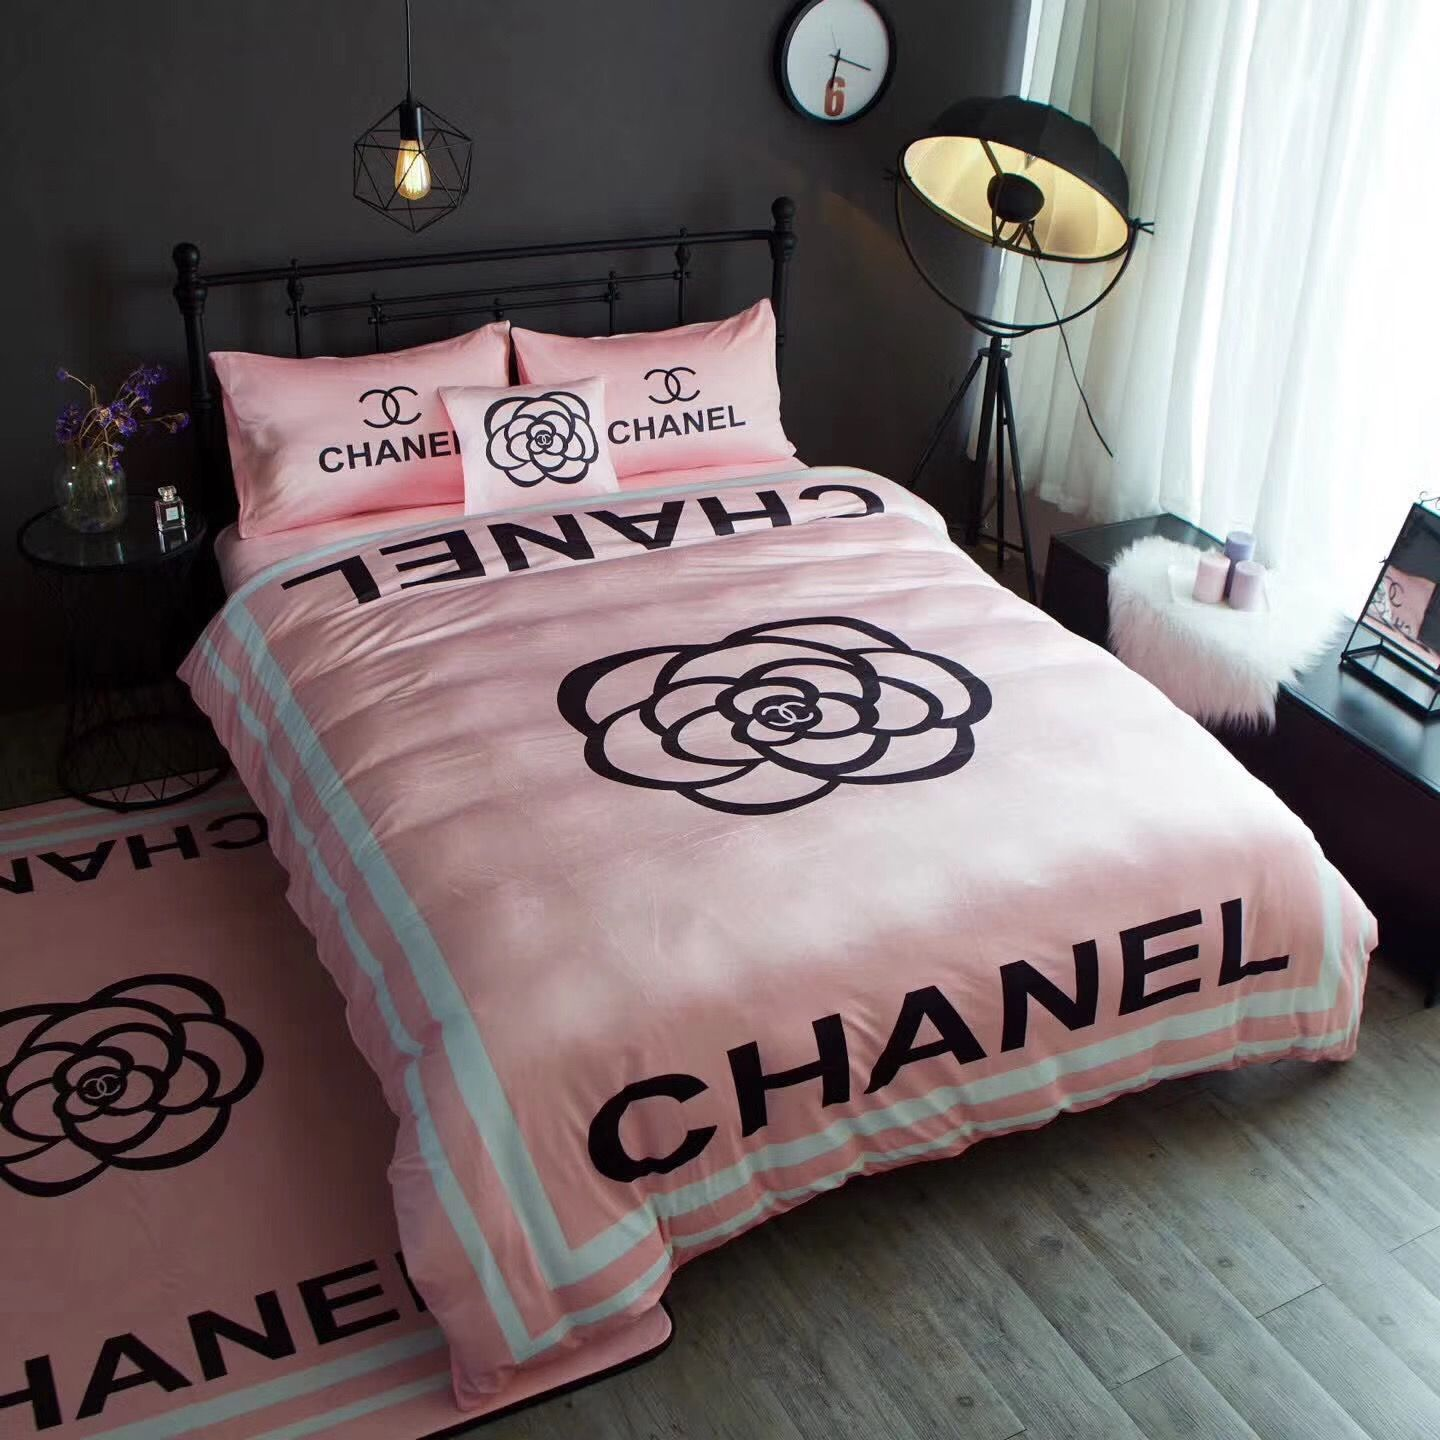 Pin By Mariacourt Zoe On Designer Bedroom Pink Bedroom Decor Girl Bedroom Decor Chanel Room